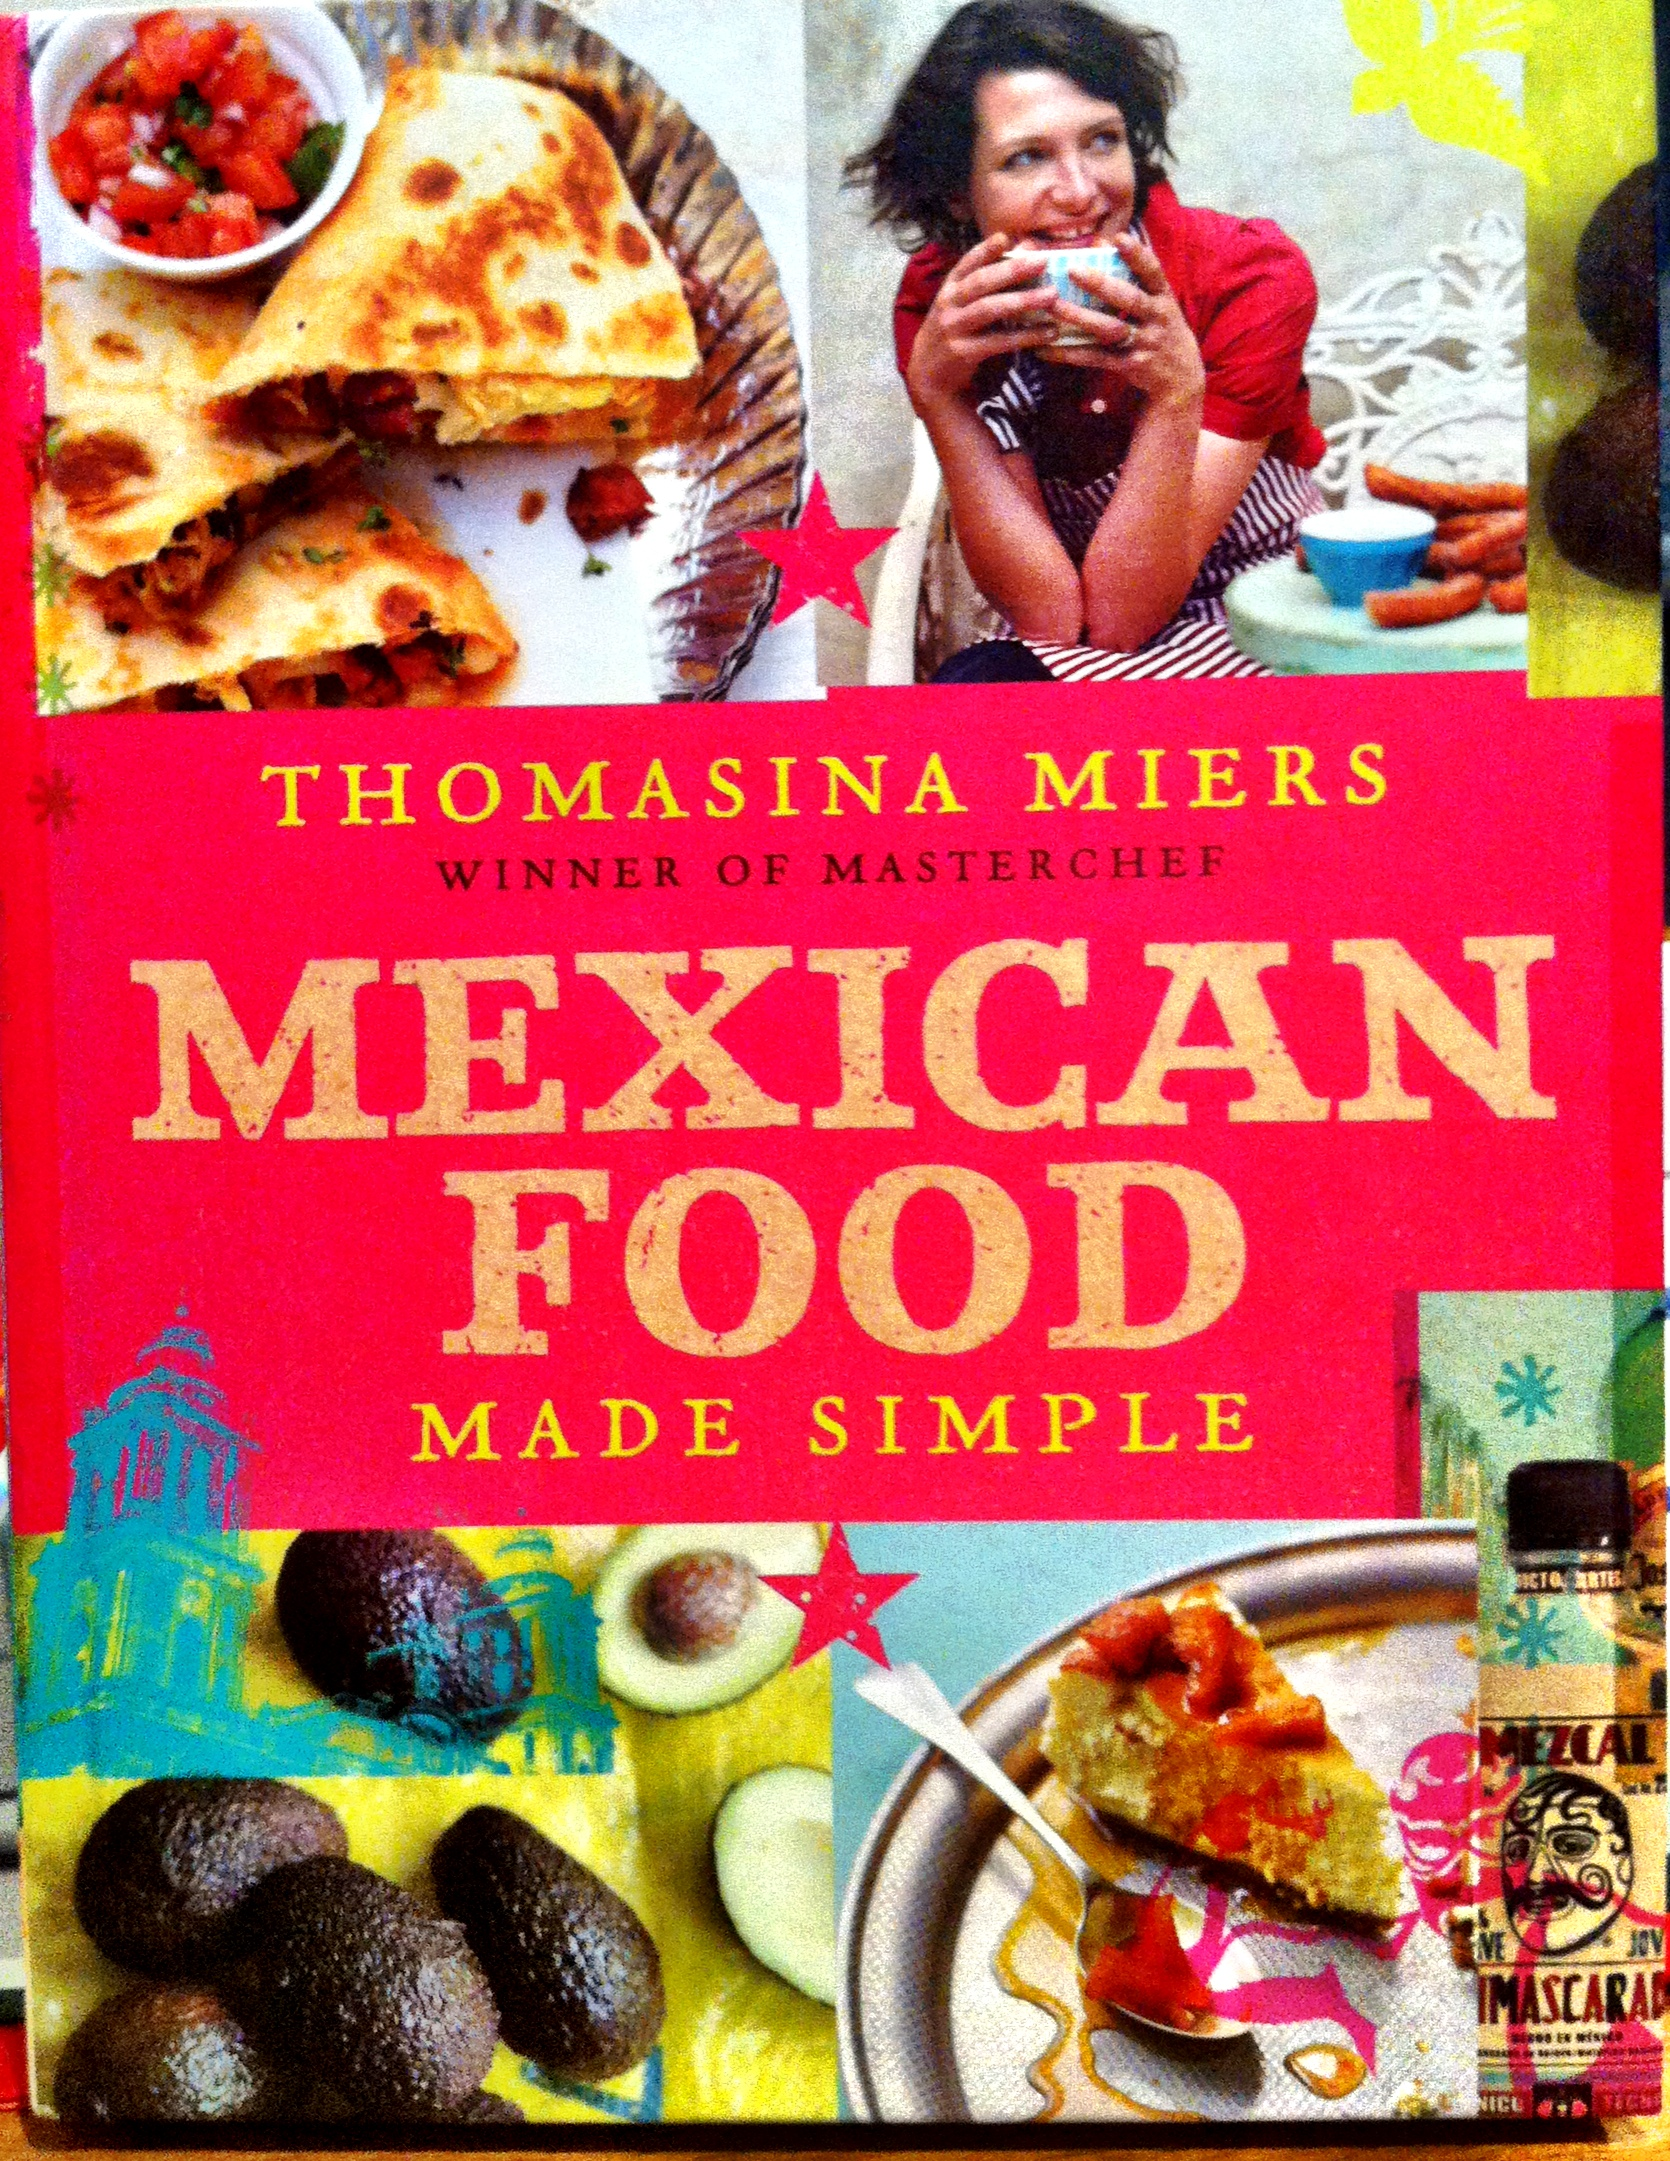 A selection of dishes from thomasina miers cookbook mexican food i was also lucky enough to make her book signing on the day and she inscribed my copy with cook like a mexican forumfinder Image collections